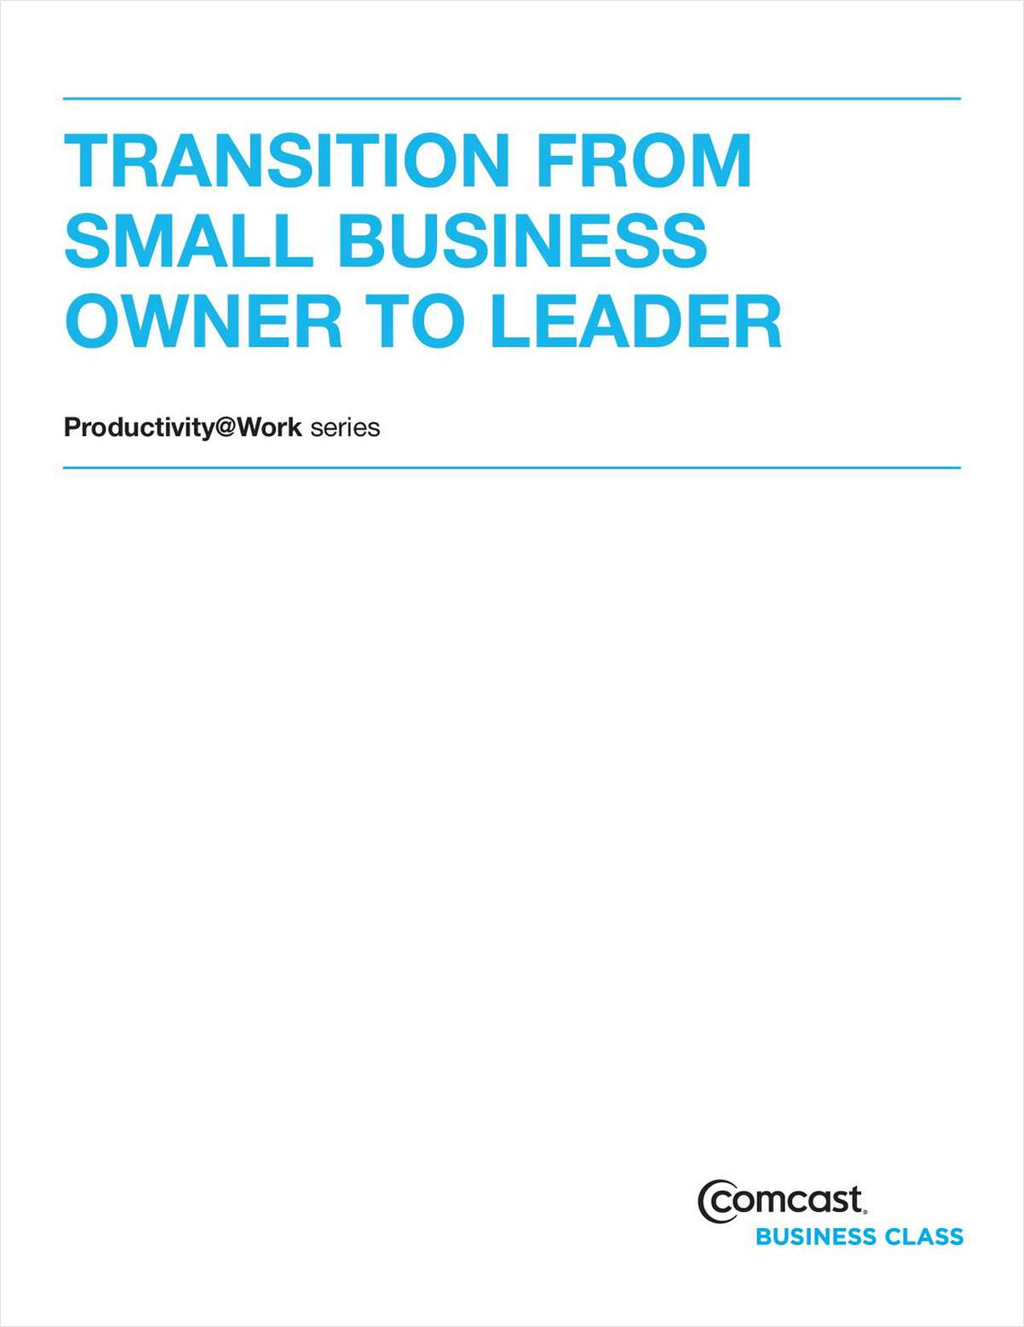 Transition From Small Business Owner To Leader (White Paper) Screenshot